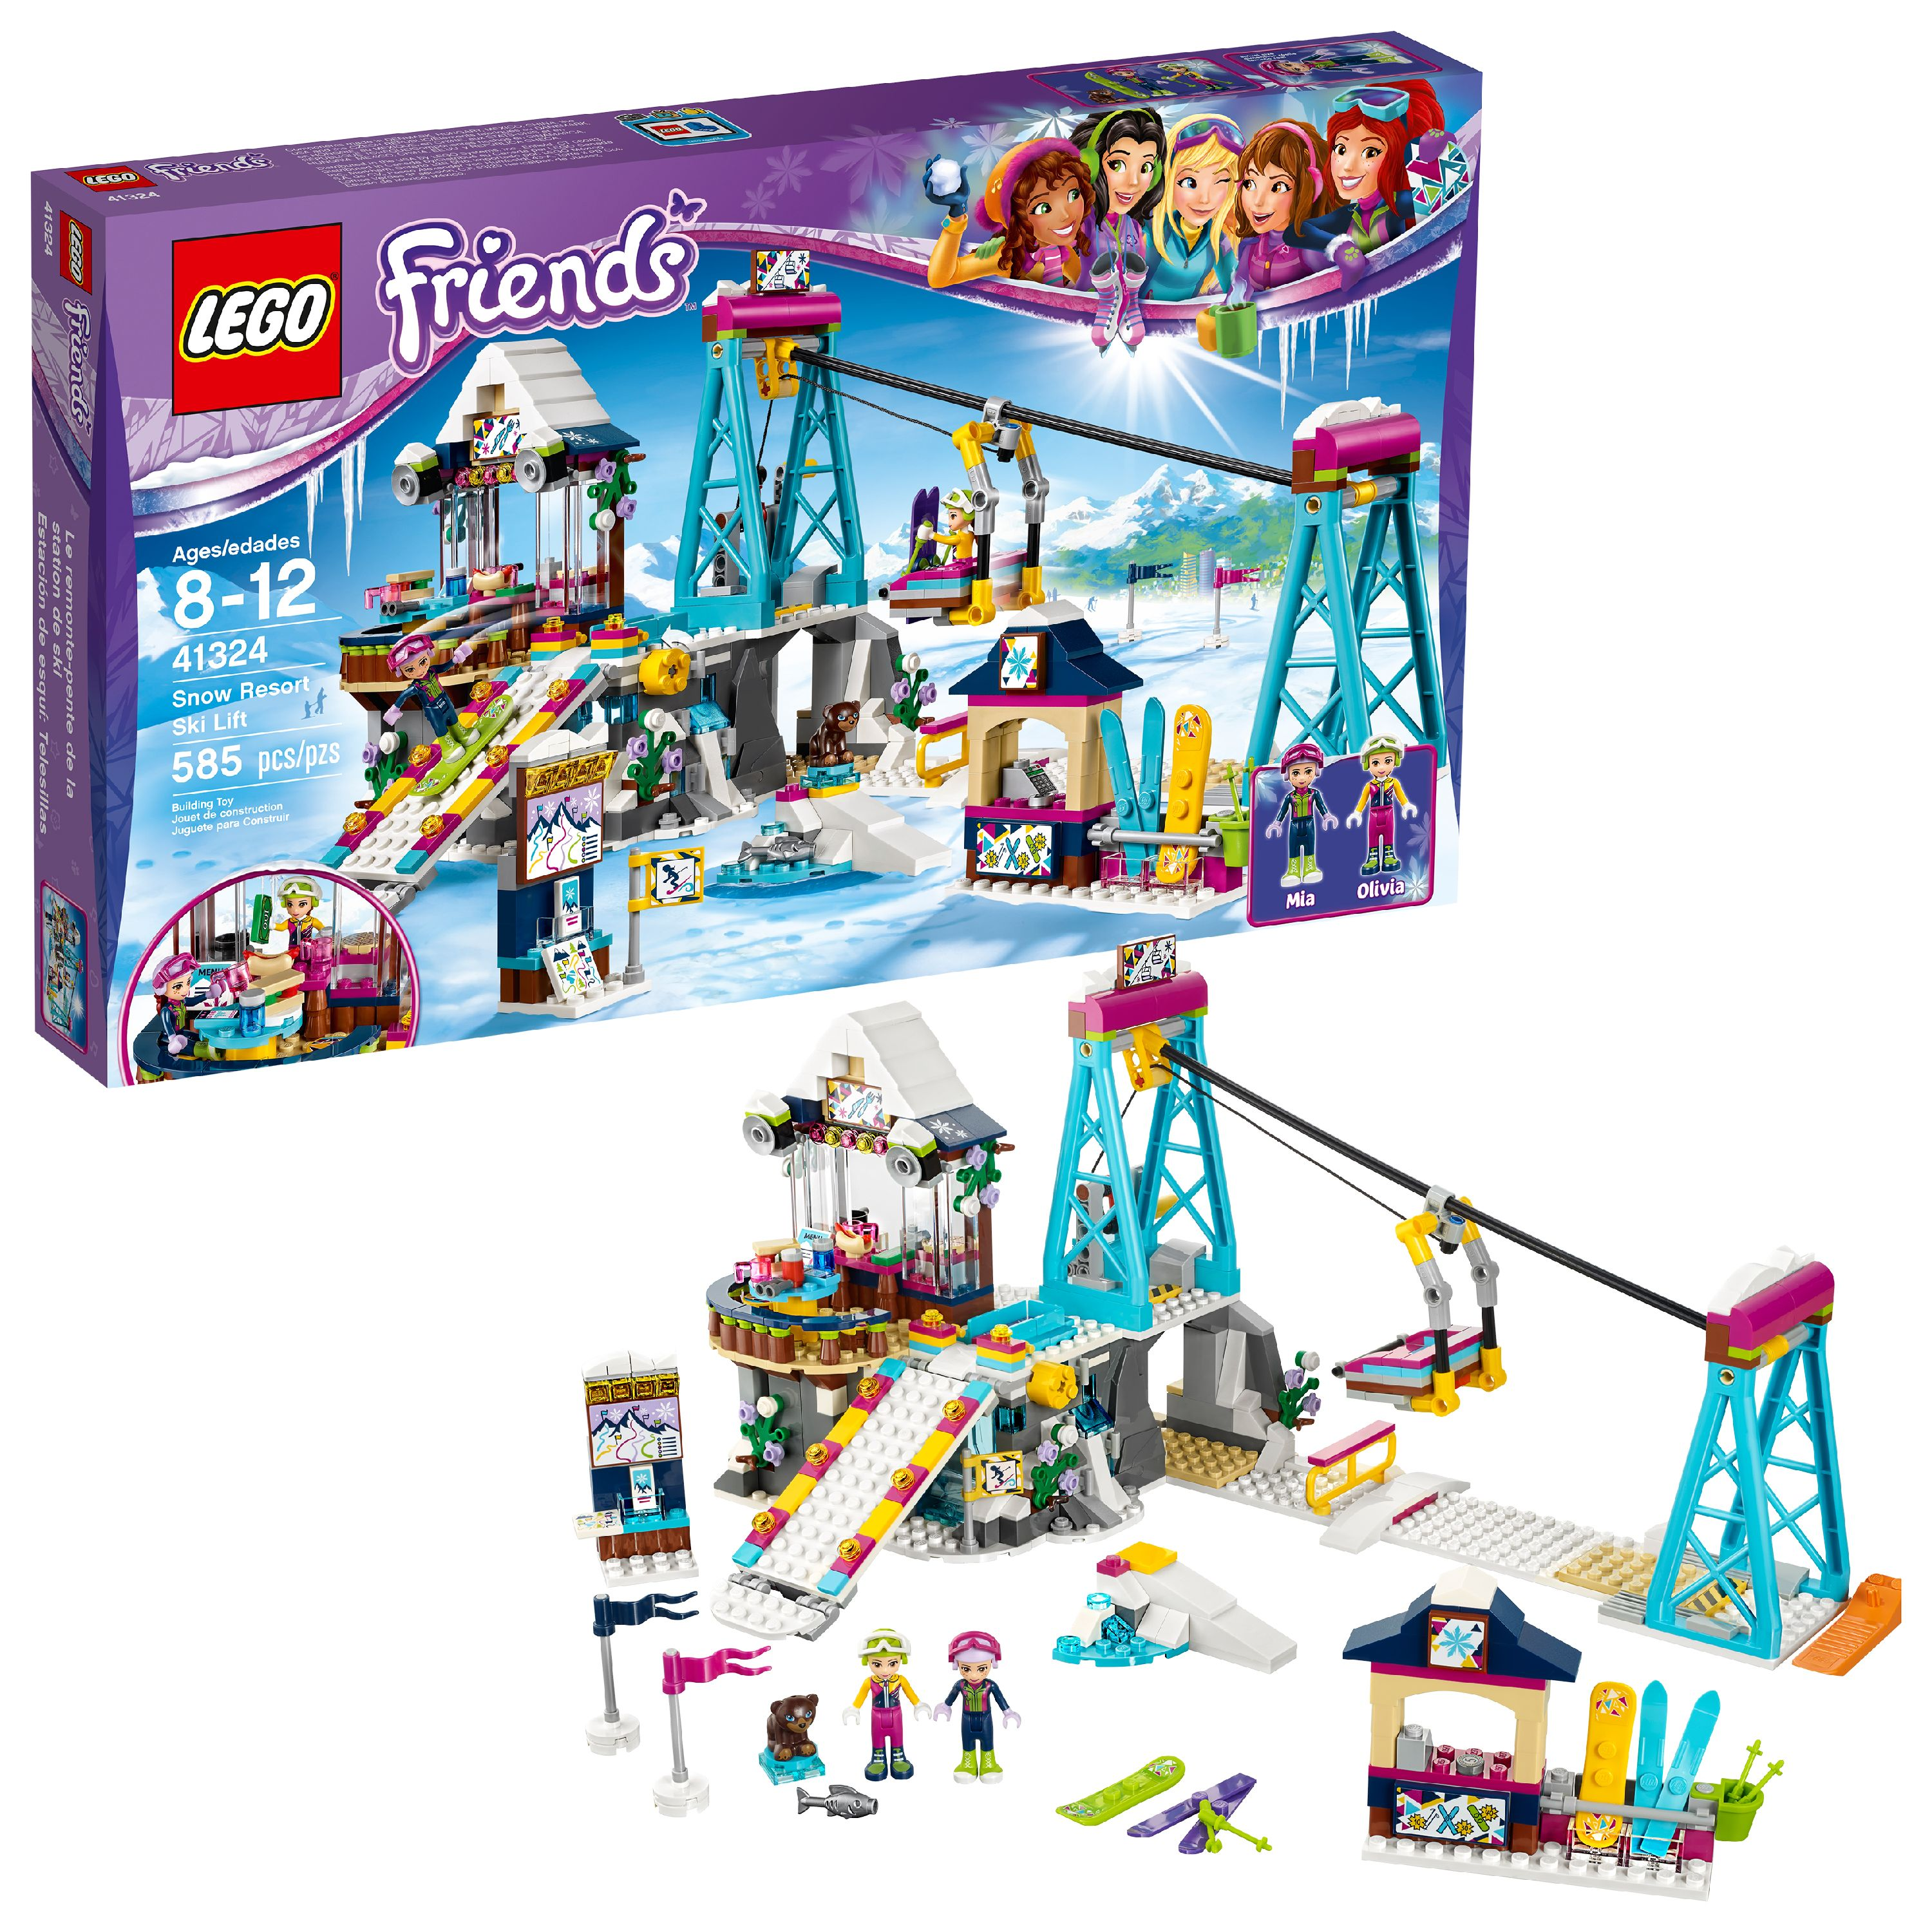 LEGO Friends Snow Resort Ski Lift 41324 (585 Pieces)